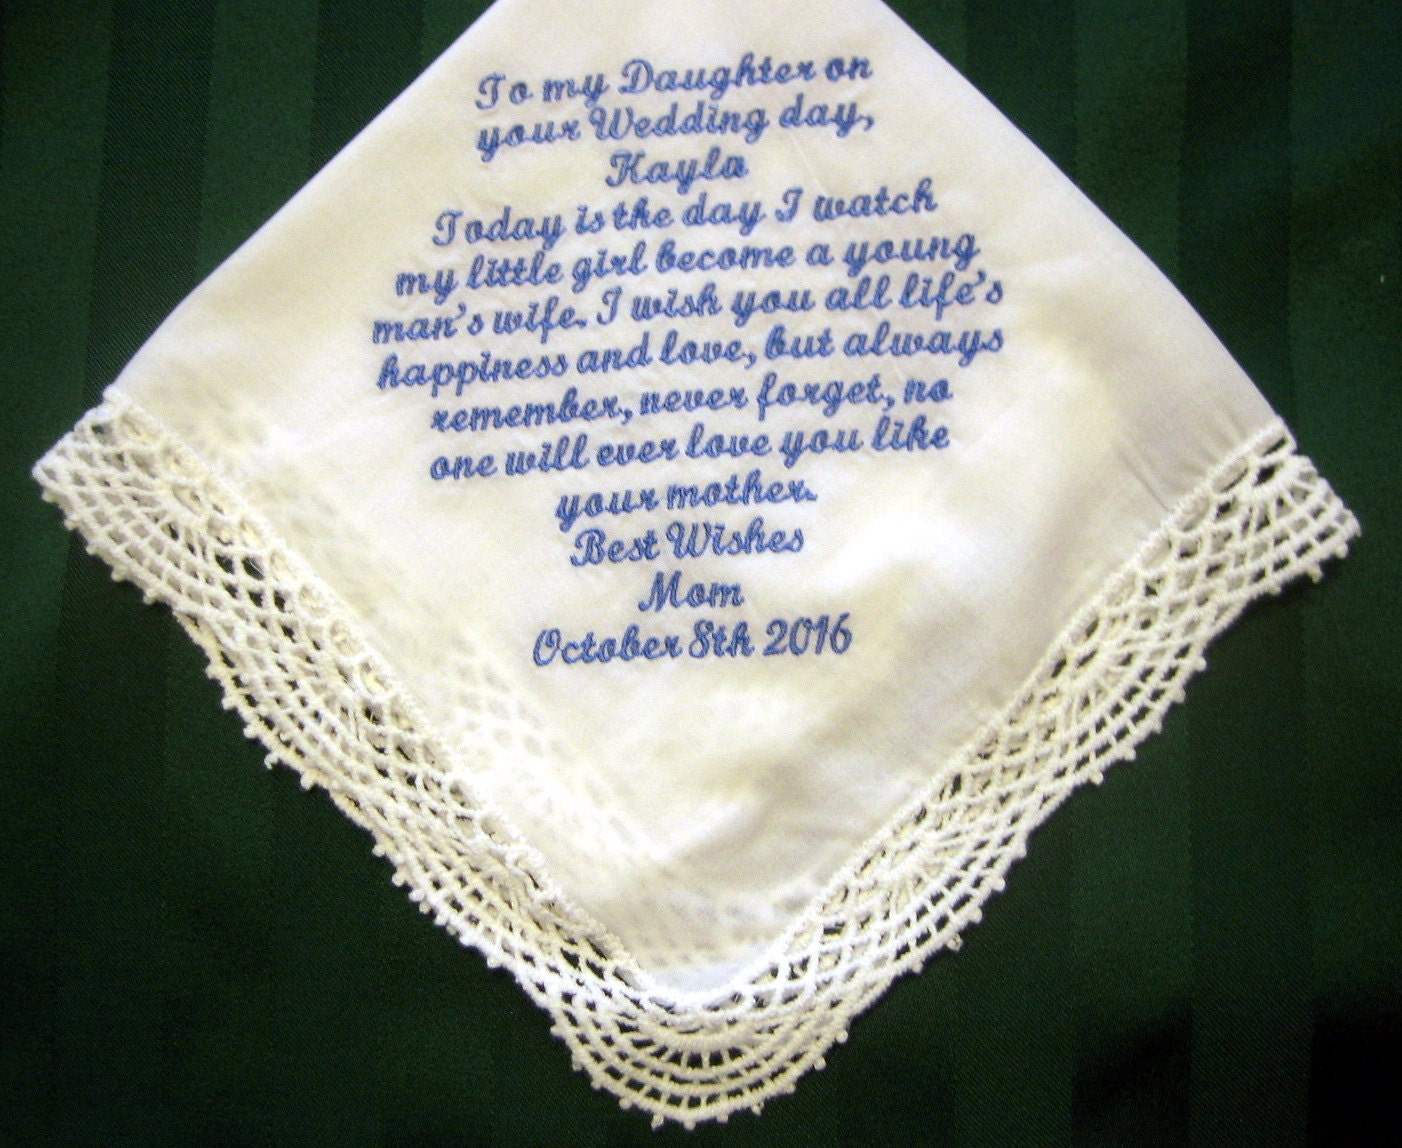 Bridal Handkerchief From Mother To DaughterSomething